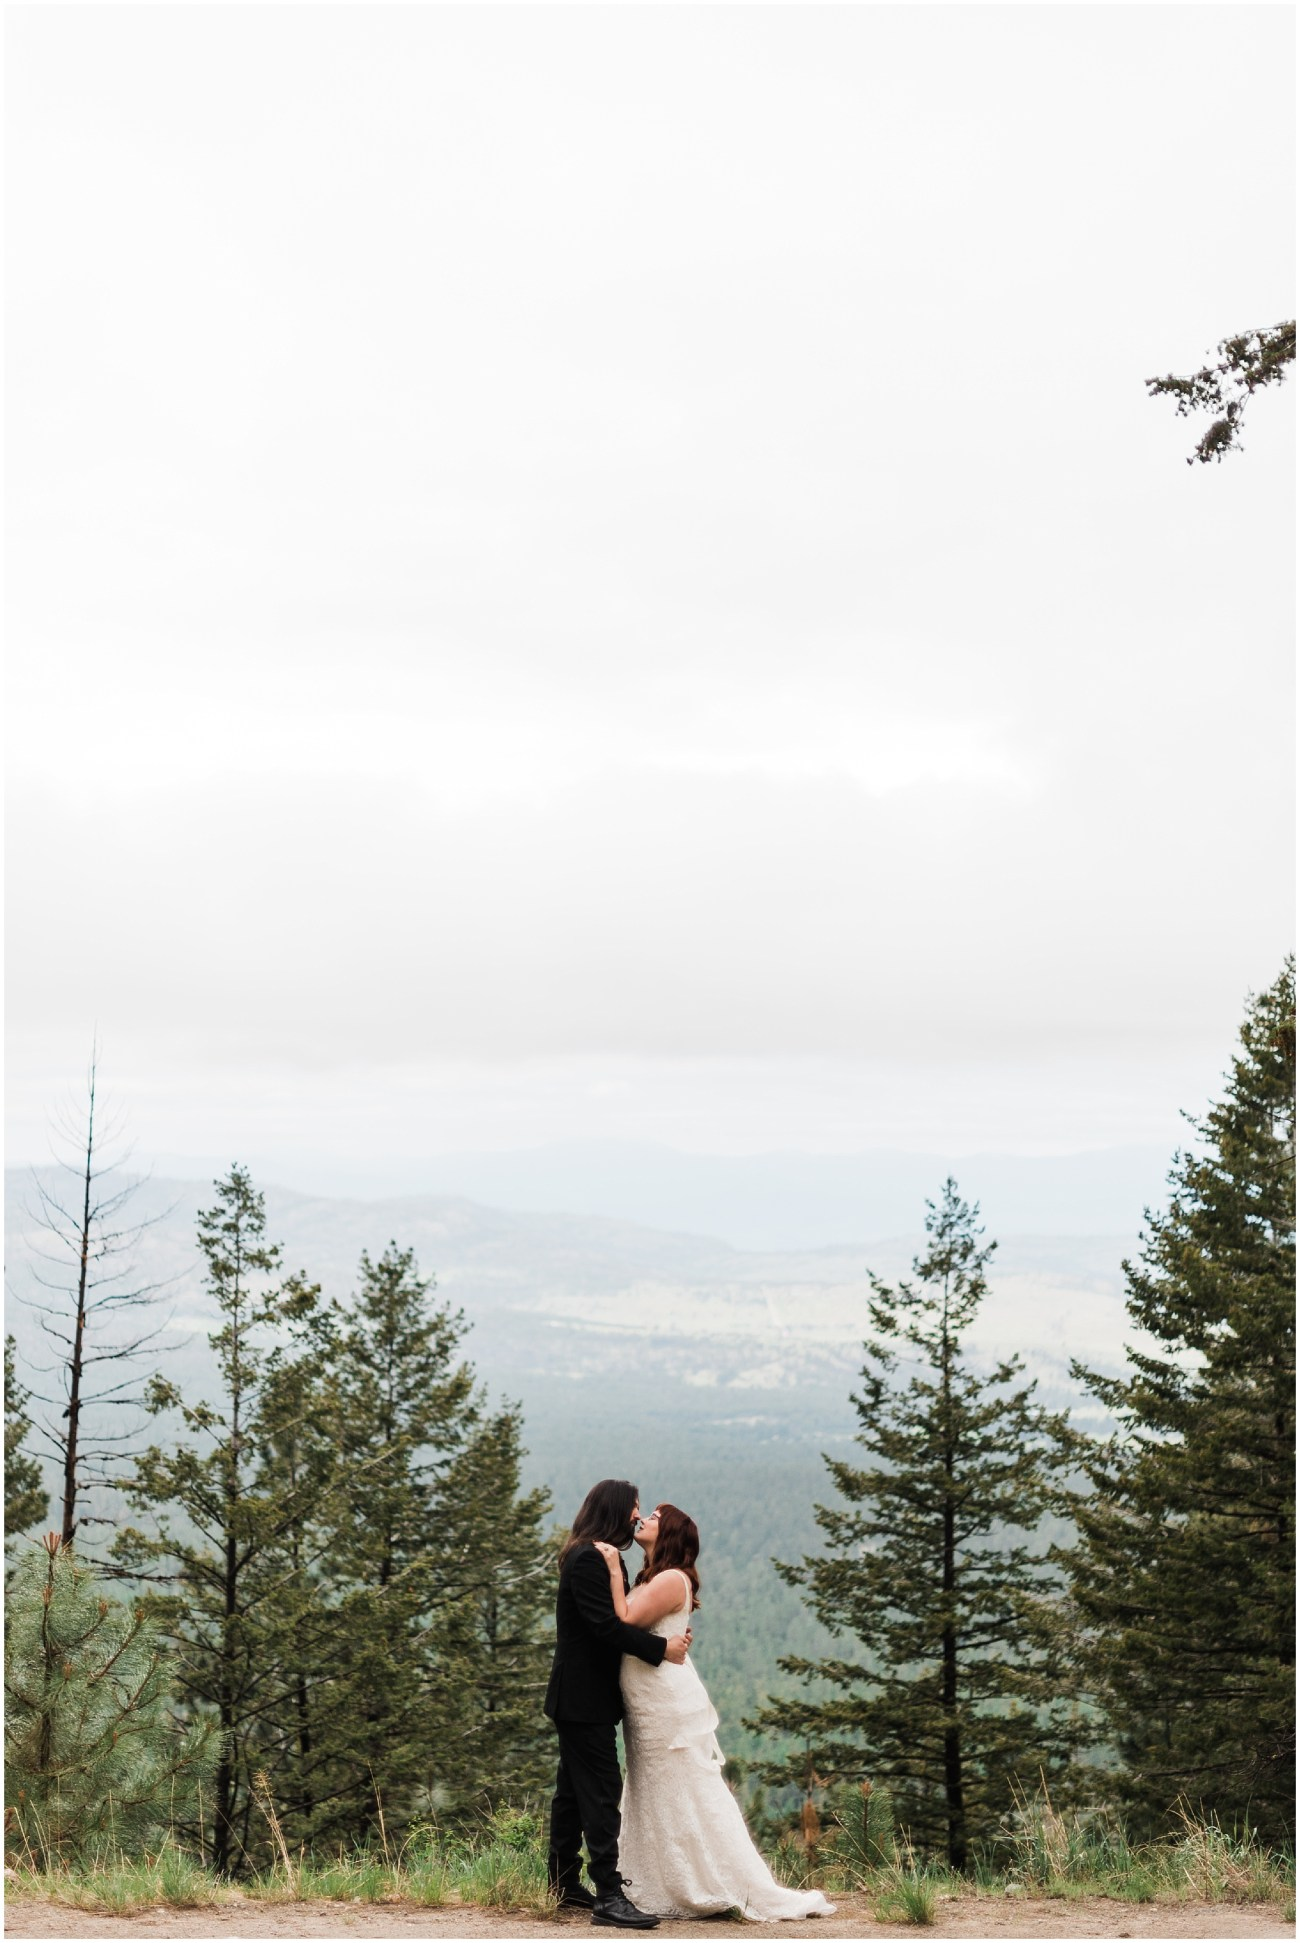 Photo of a bride and groom kissing by an overlook of Tunk Valley outside of Omak, WA by Forthright Photo